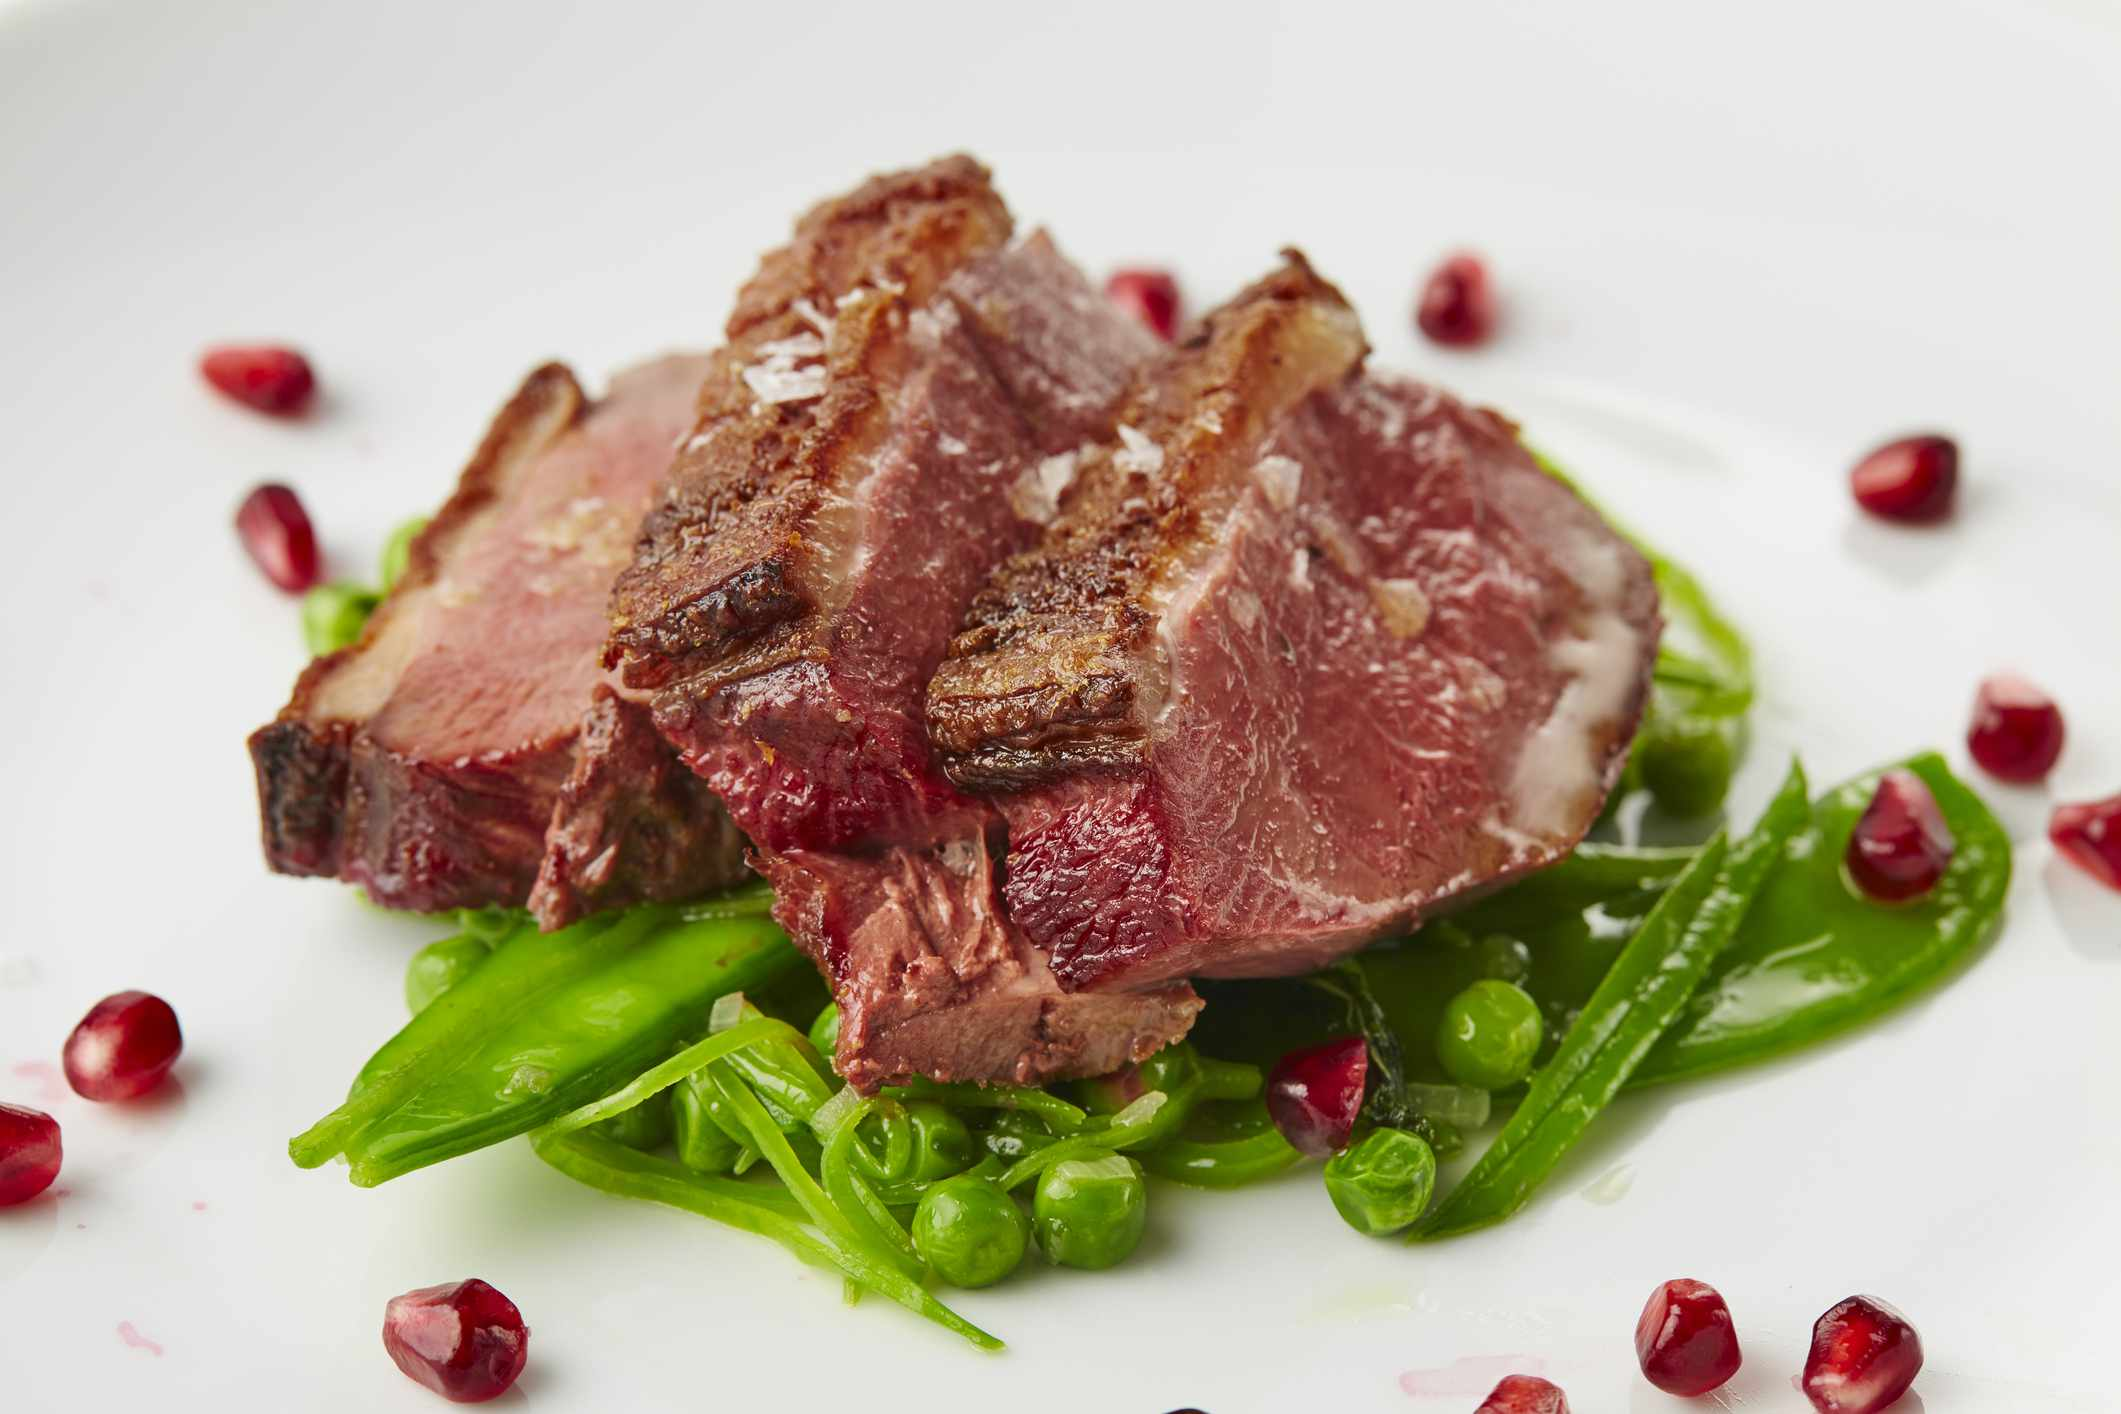 Plate of grilled duck on spring peas with pomegranate seeds